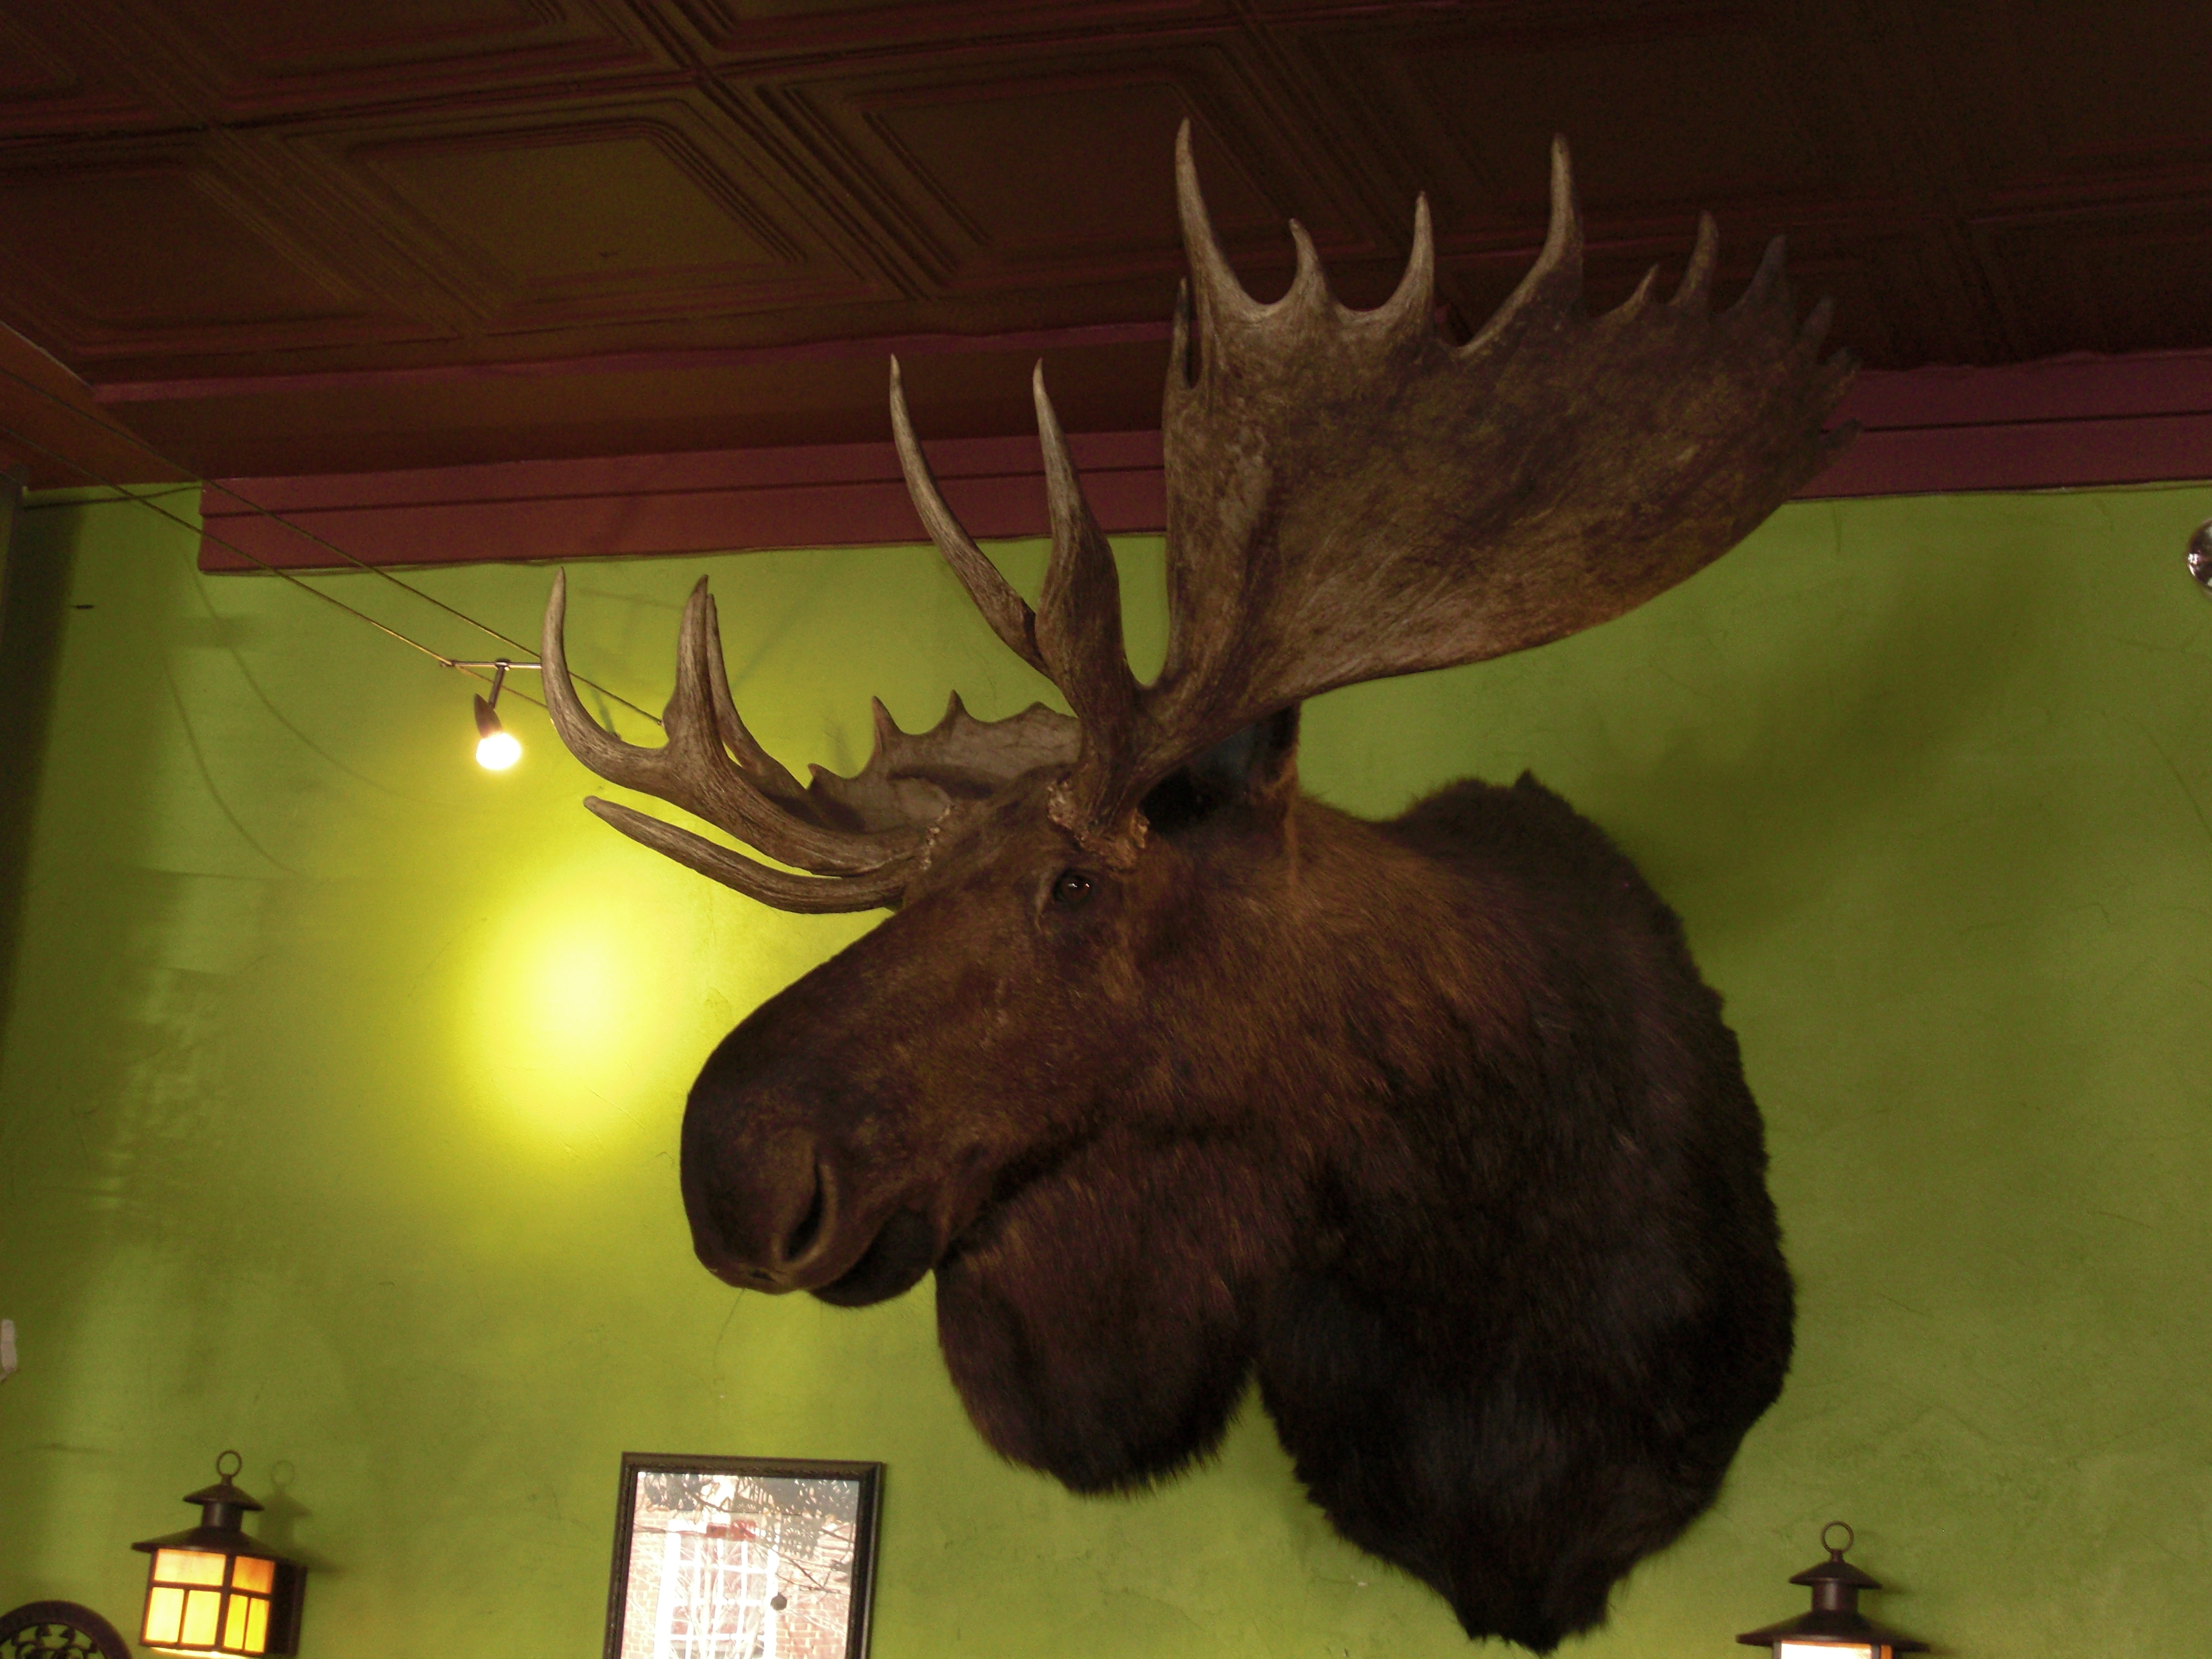 The Golden West moose